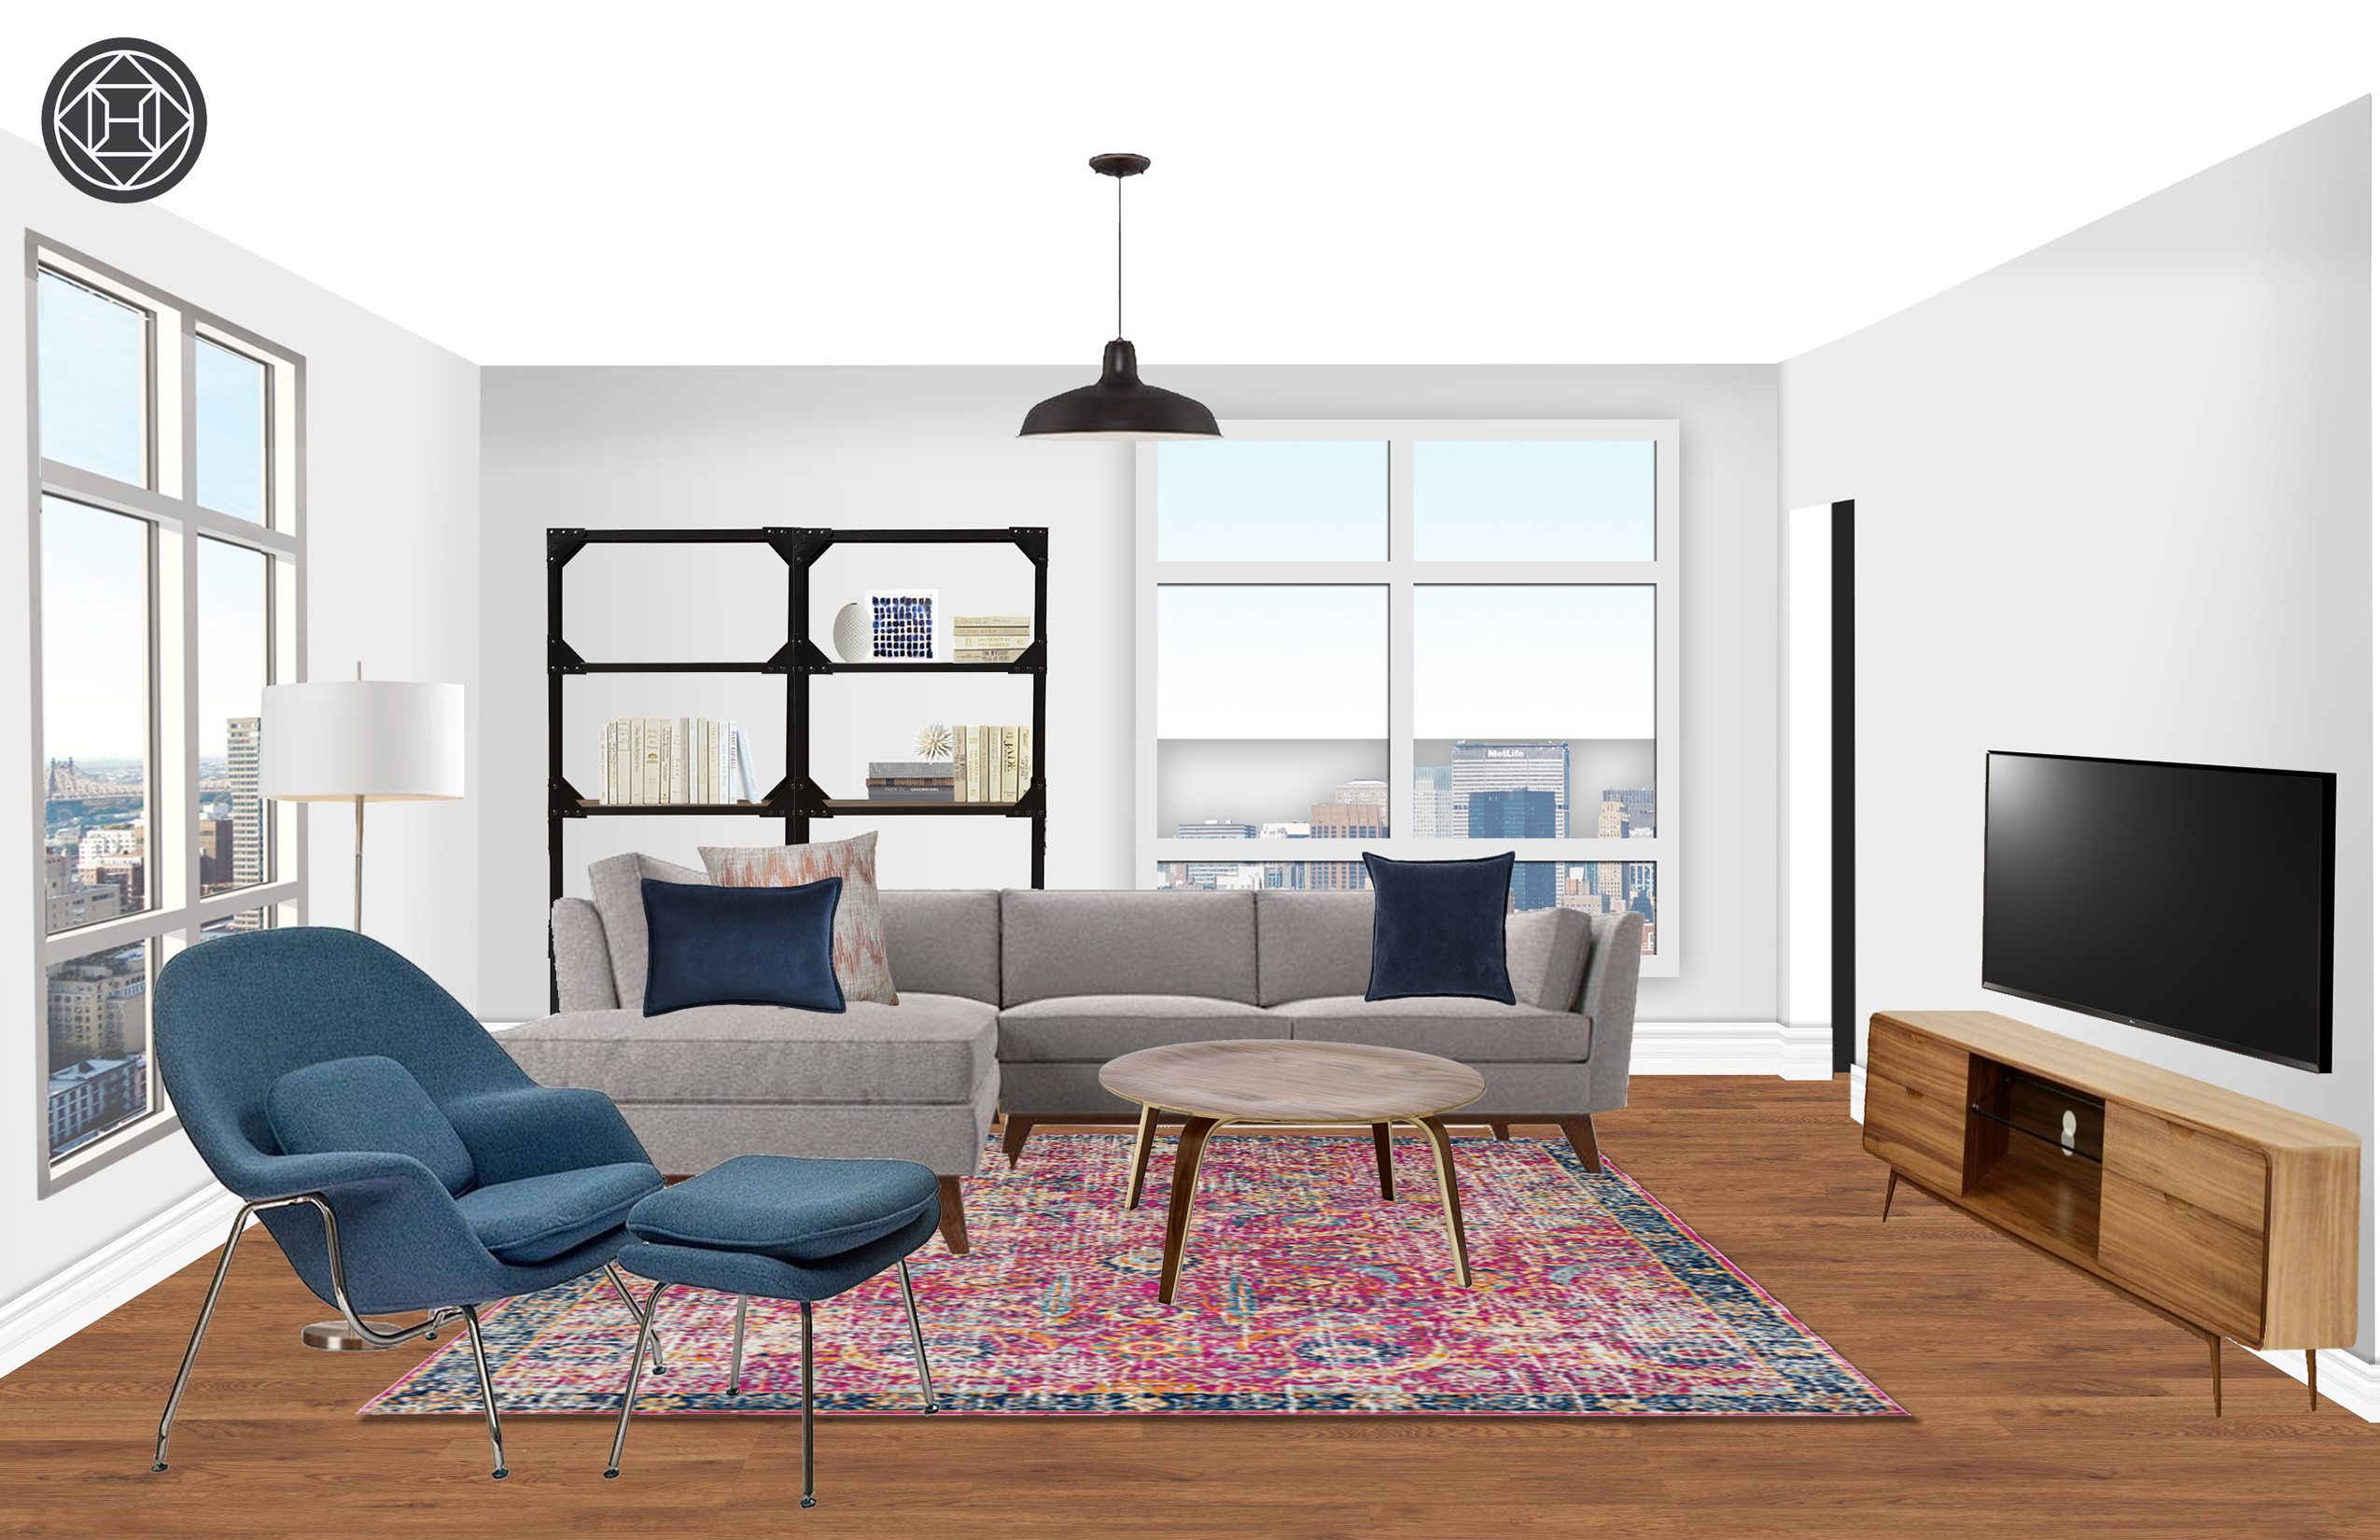 Eclectic Midcentury Modern Minimal Living Room Design By